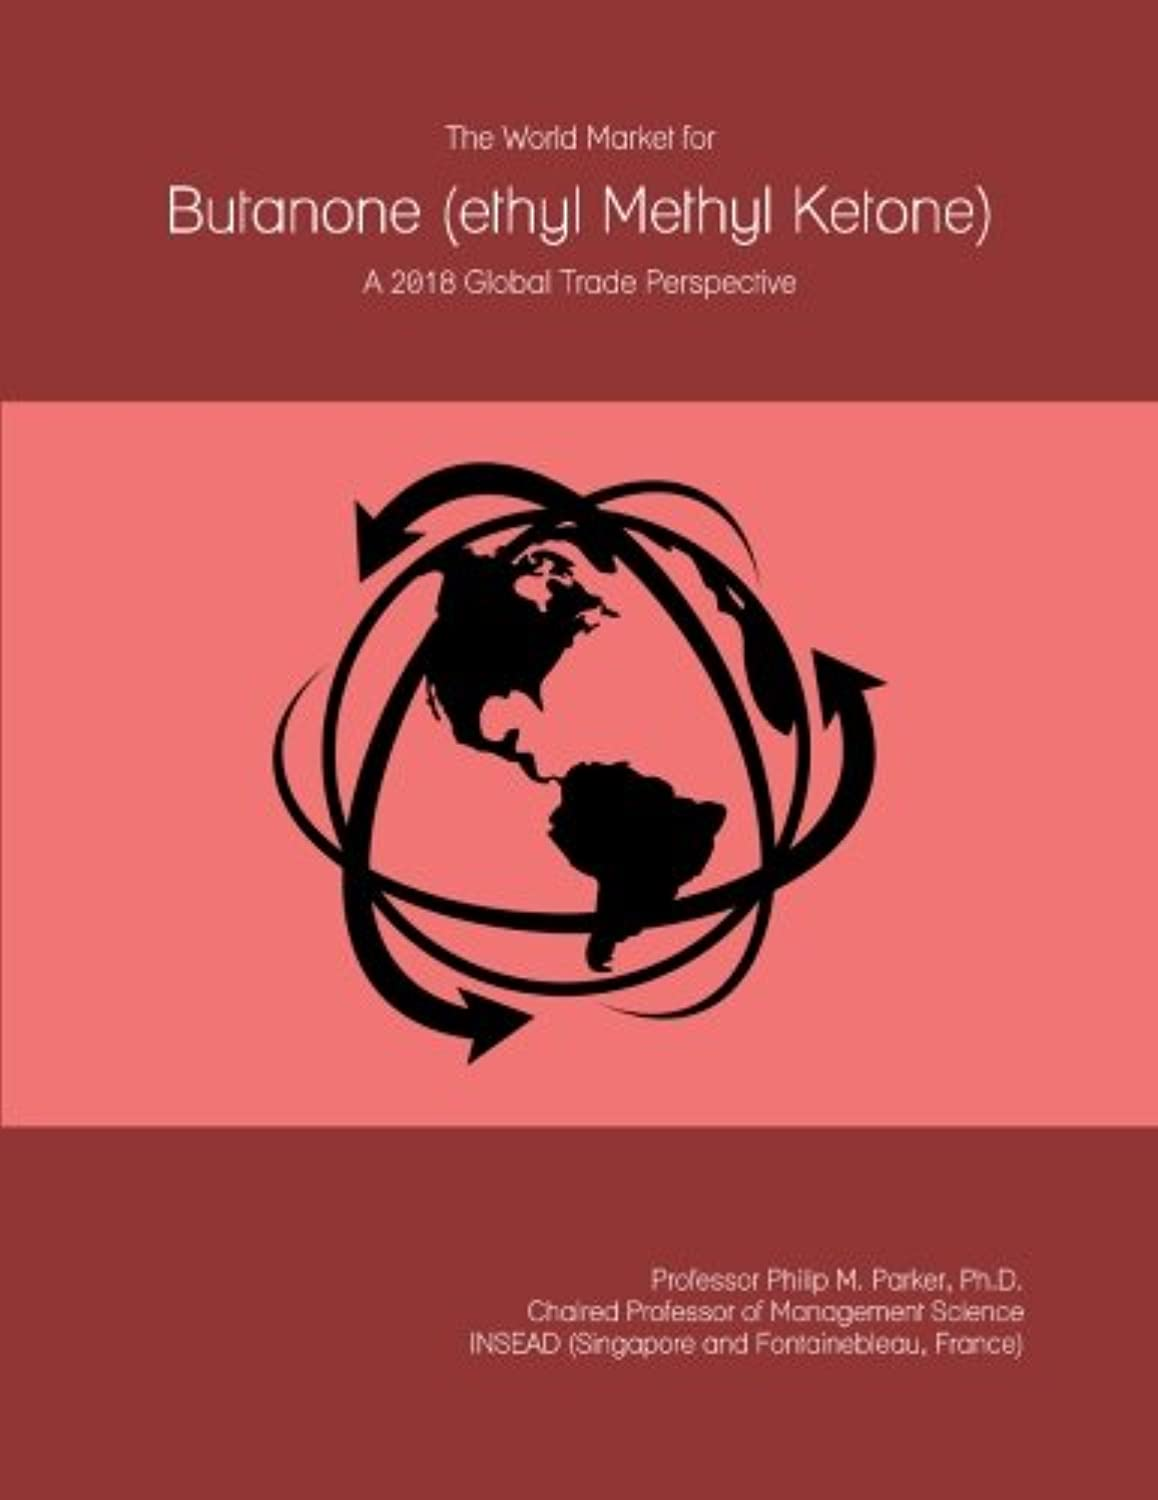 The World Market for Butanone (ethyl Methyl Ketone): A 2018 Global Trade Perspective